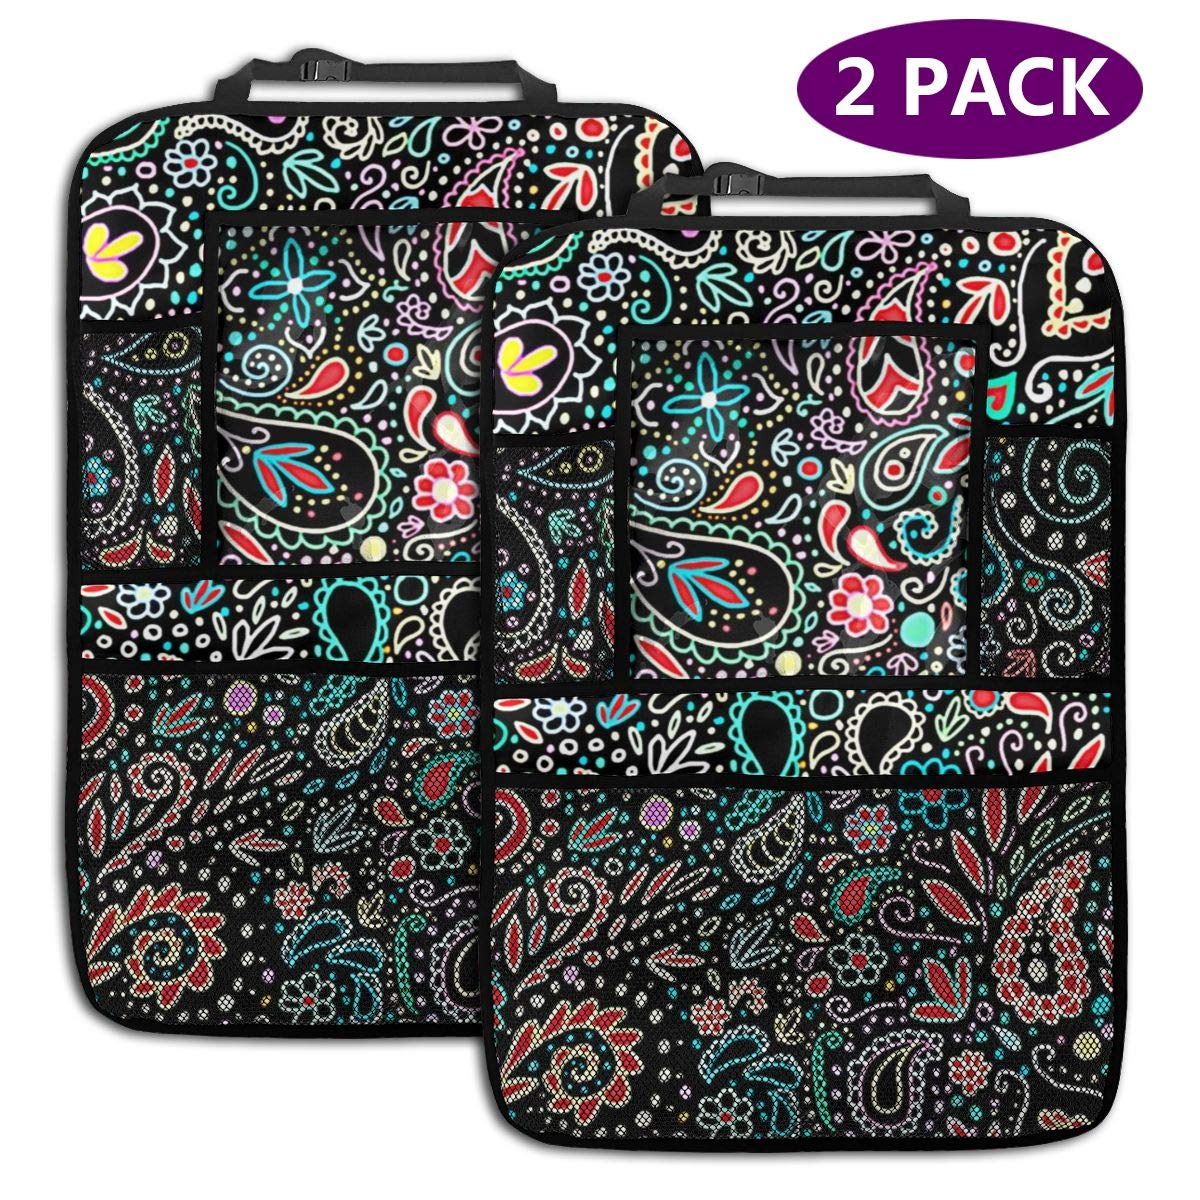 QF6FEICHAN Maker Blacklight Chalkboard Paisley Car Seat Back Protectors with Storage Pockets Kick Mats Accessories for Kids and Toddlers by QF6FEICHAN